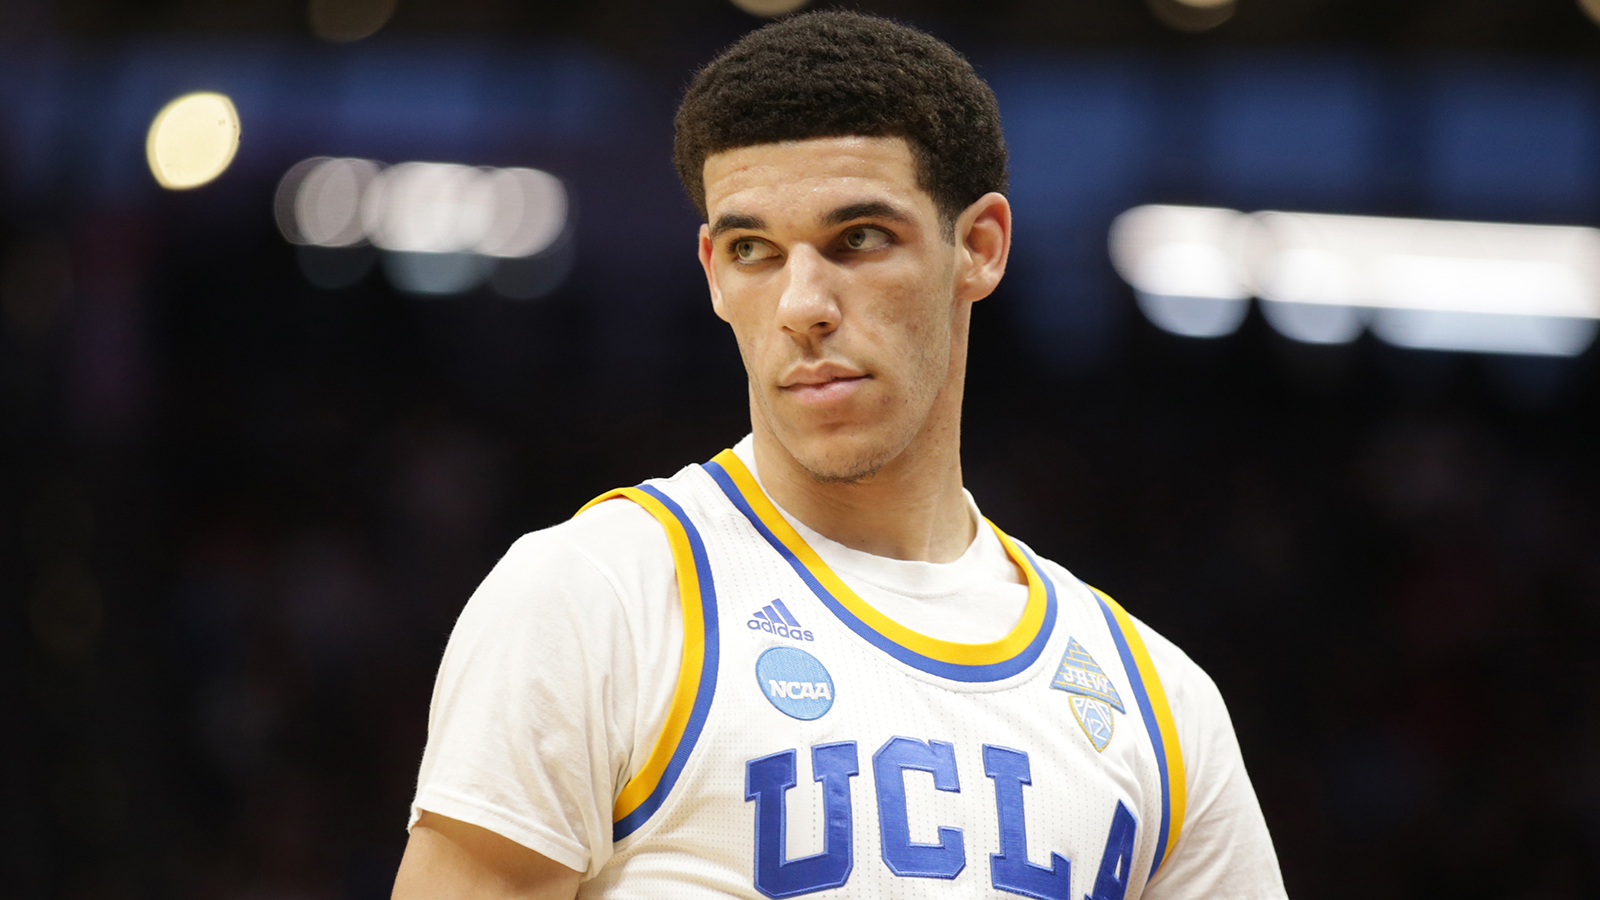 Mar 19, 2017; Sacramento, CA, USA; UCLA Bruins guard Lonzo Ball (2) look on in game against the Cincinnati Bearcats during the second round of the 2017 NCAA Tournament at Golden 1 Center. Mandatory Credit: Kelley L Cox-USA TODAY Sports